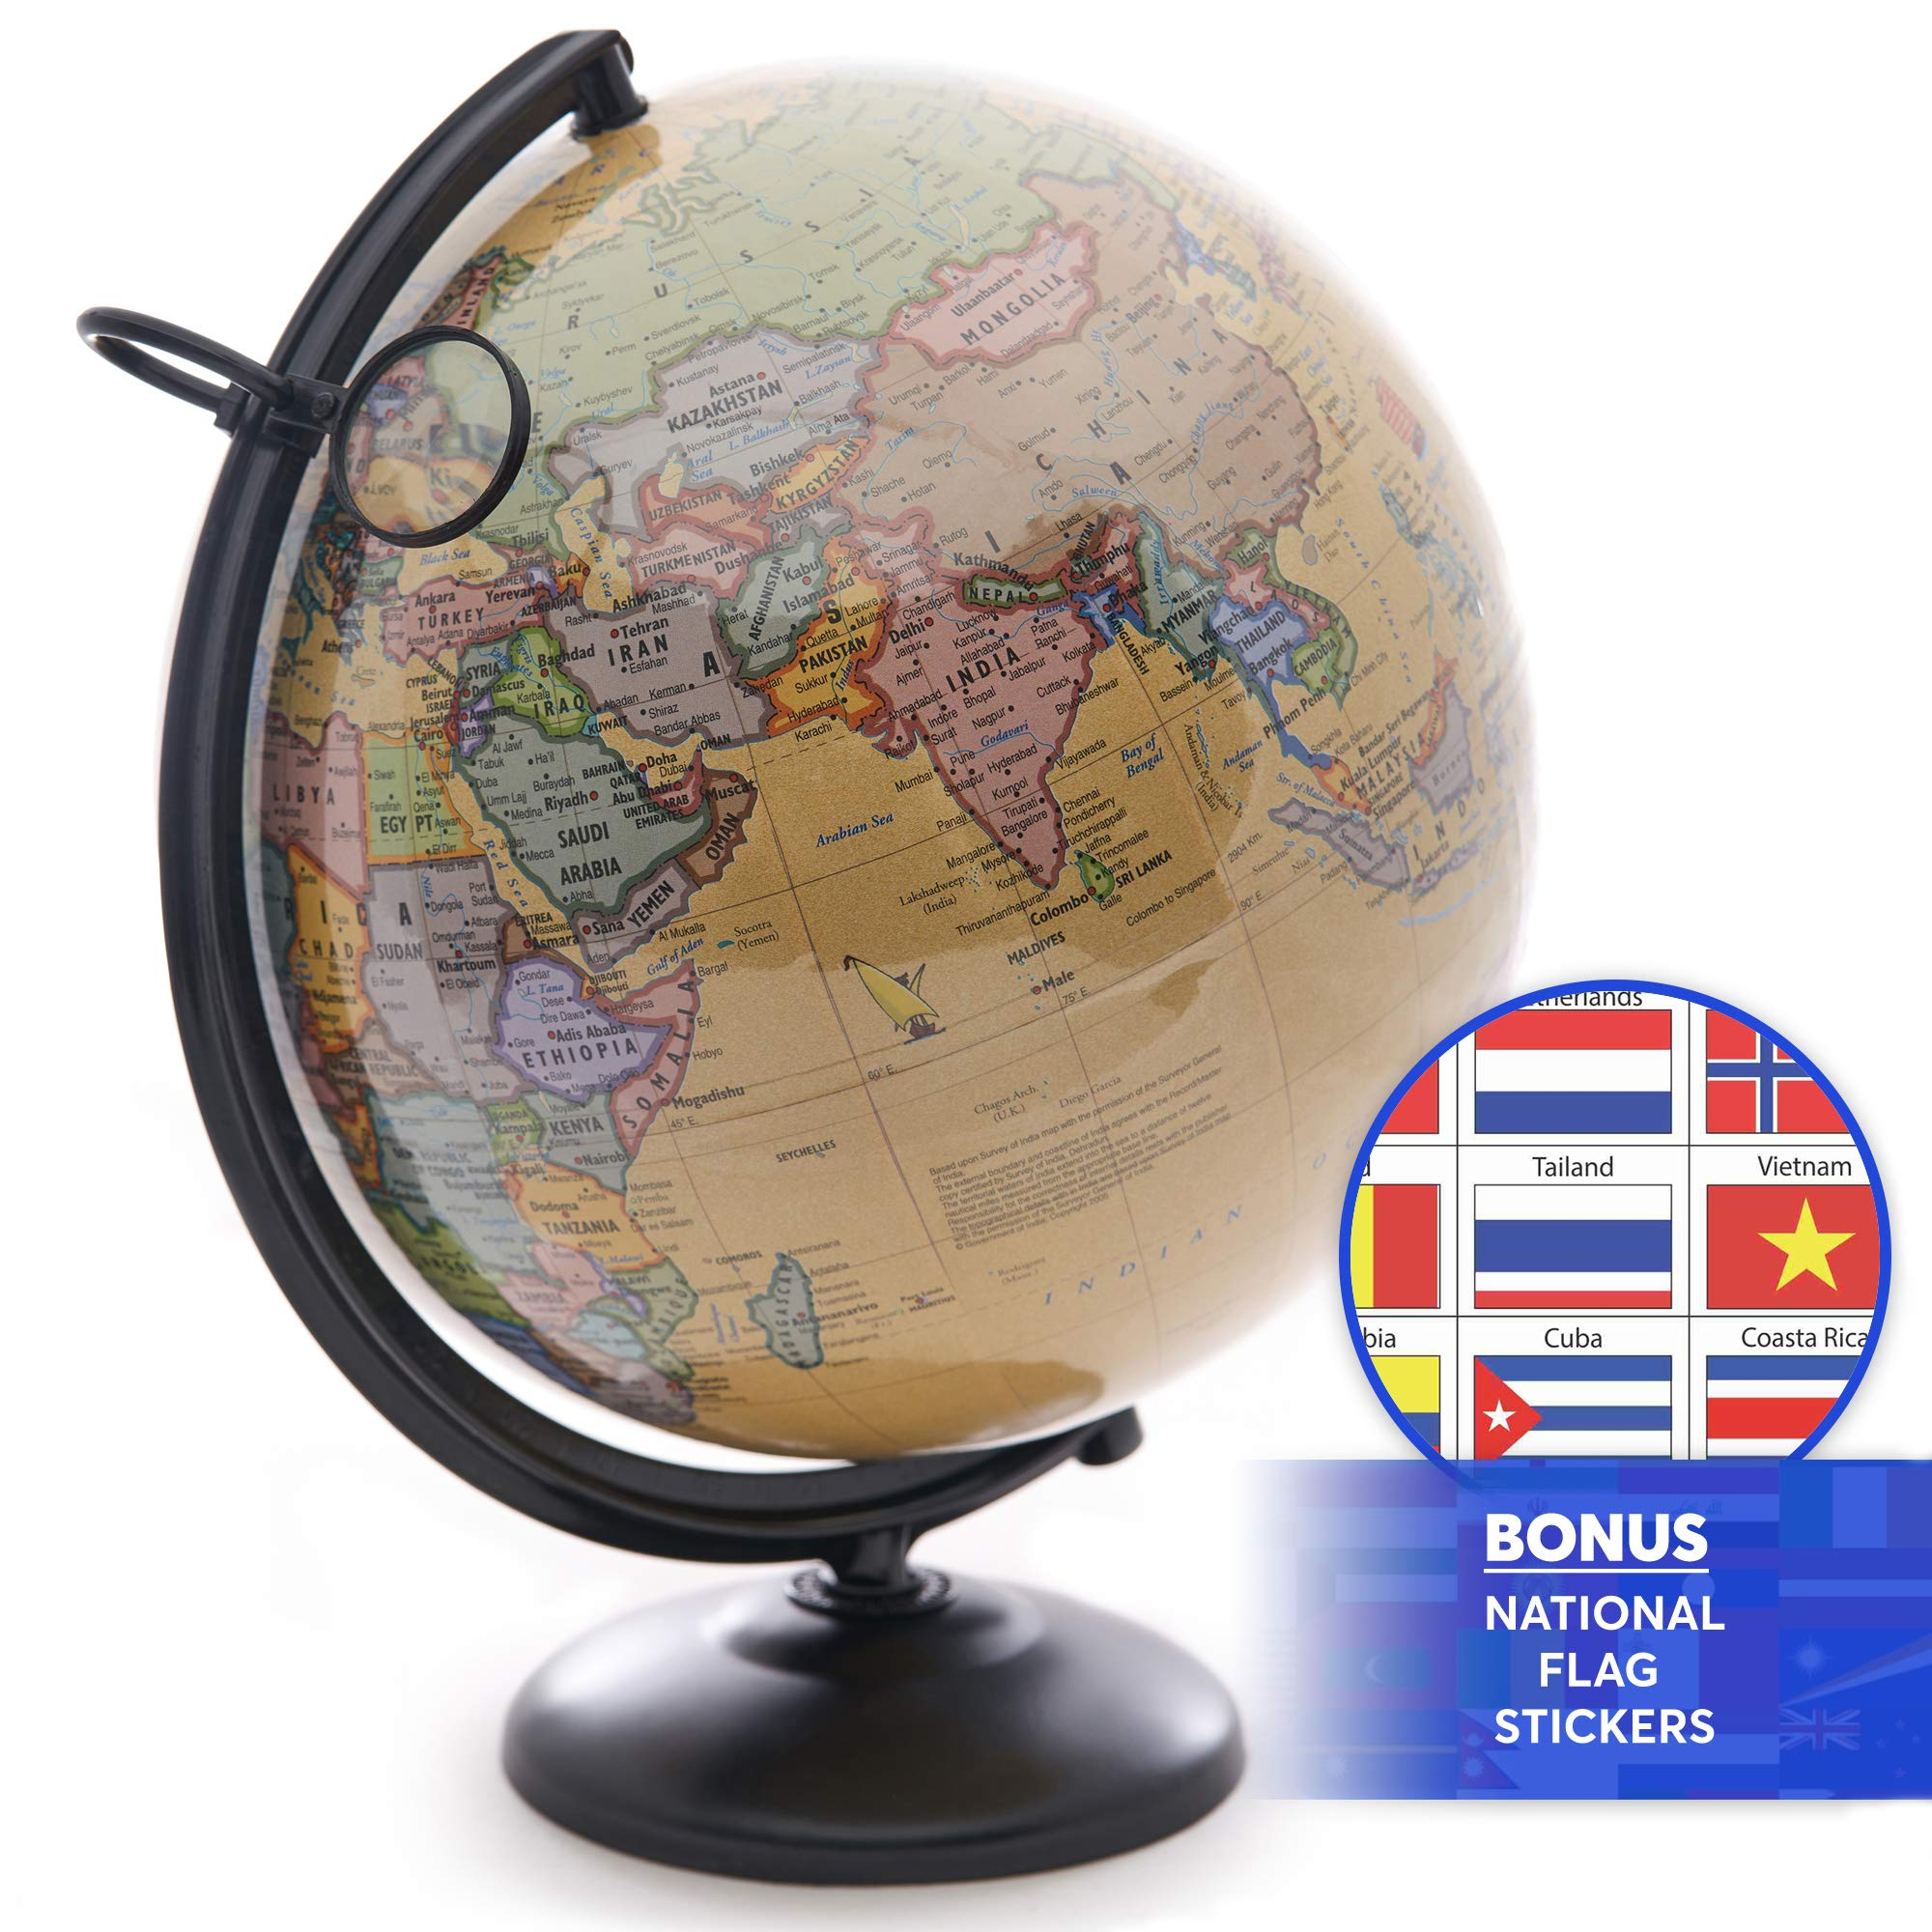 12 Inch World Globe with Metal Stand and Magnifying Glass. Perfect Desk or Classroom Globe for Adults and Children. 2019 Edition with Bonus Nation Flag Stickers! by OMISHOME